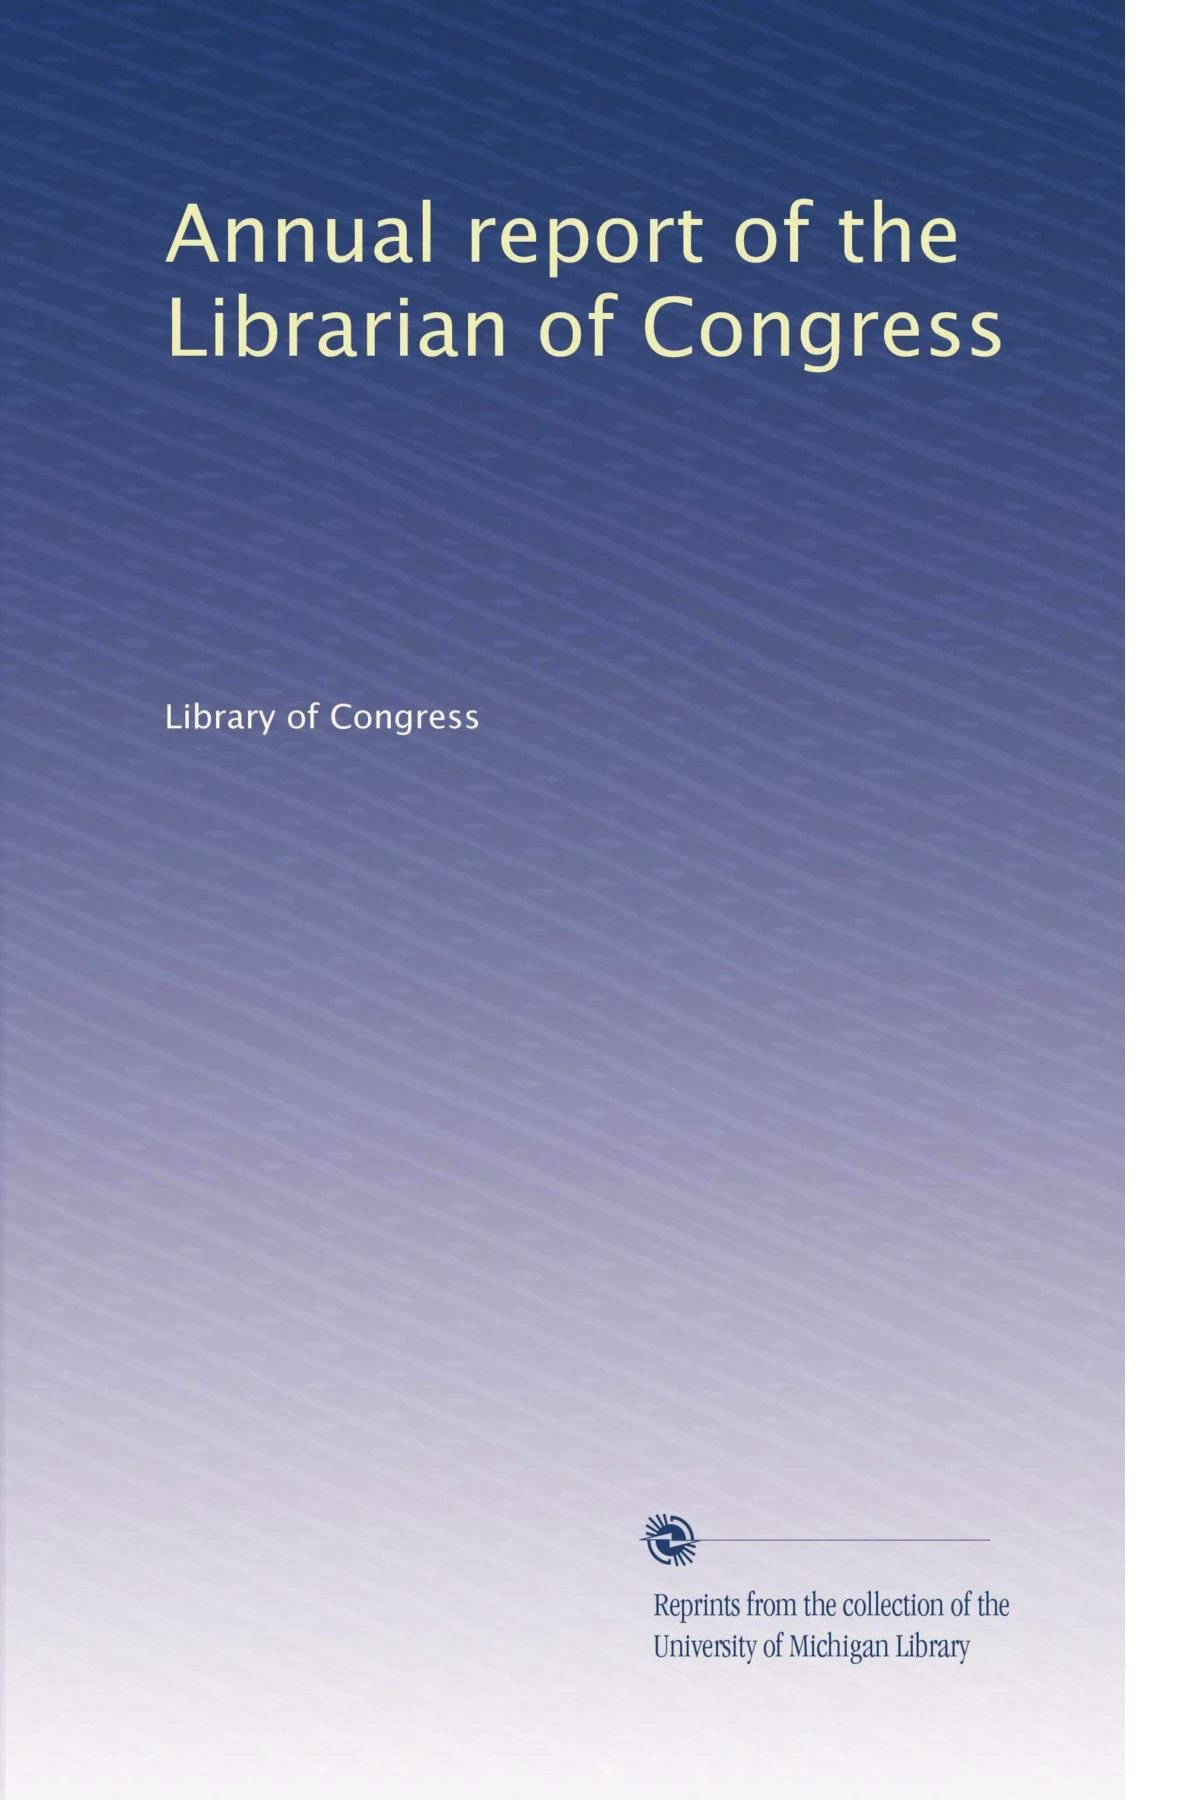 Download Annual report of the Librarian of Congress (Volume 89) ebook